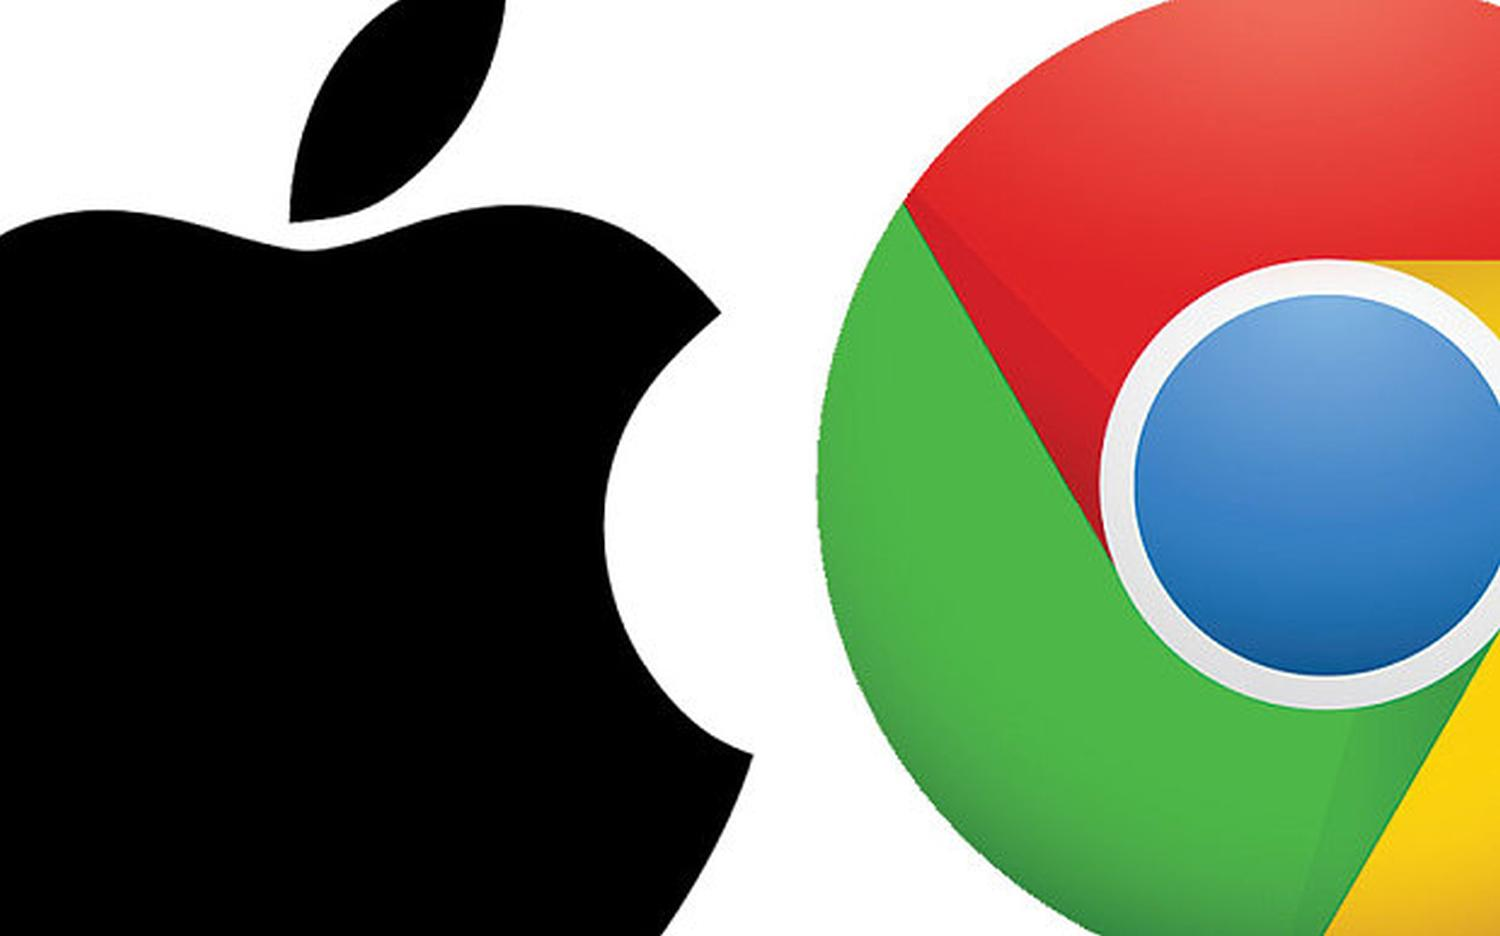 apple google chrome